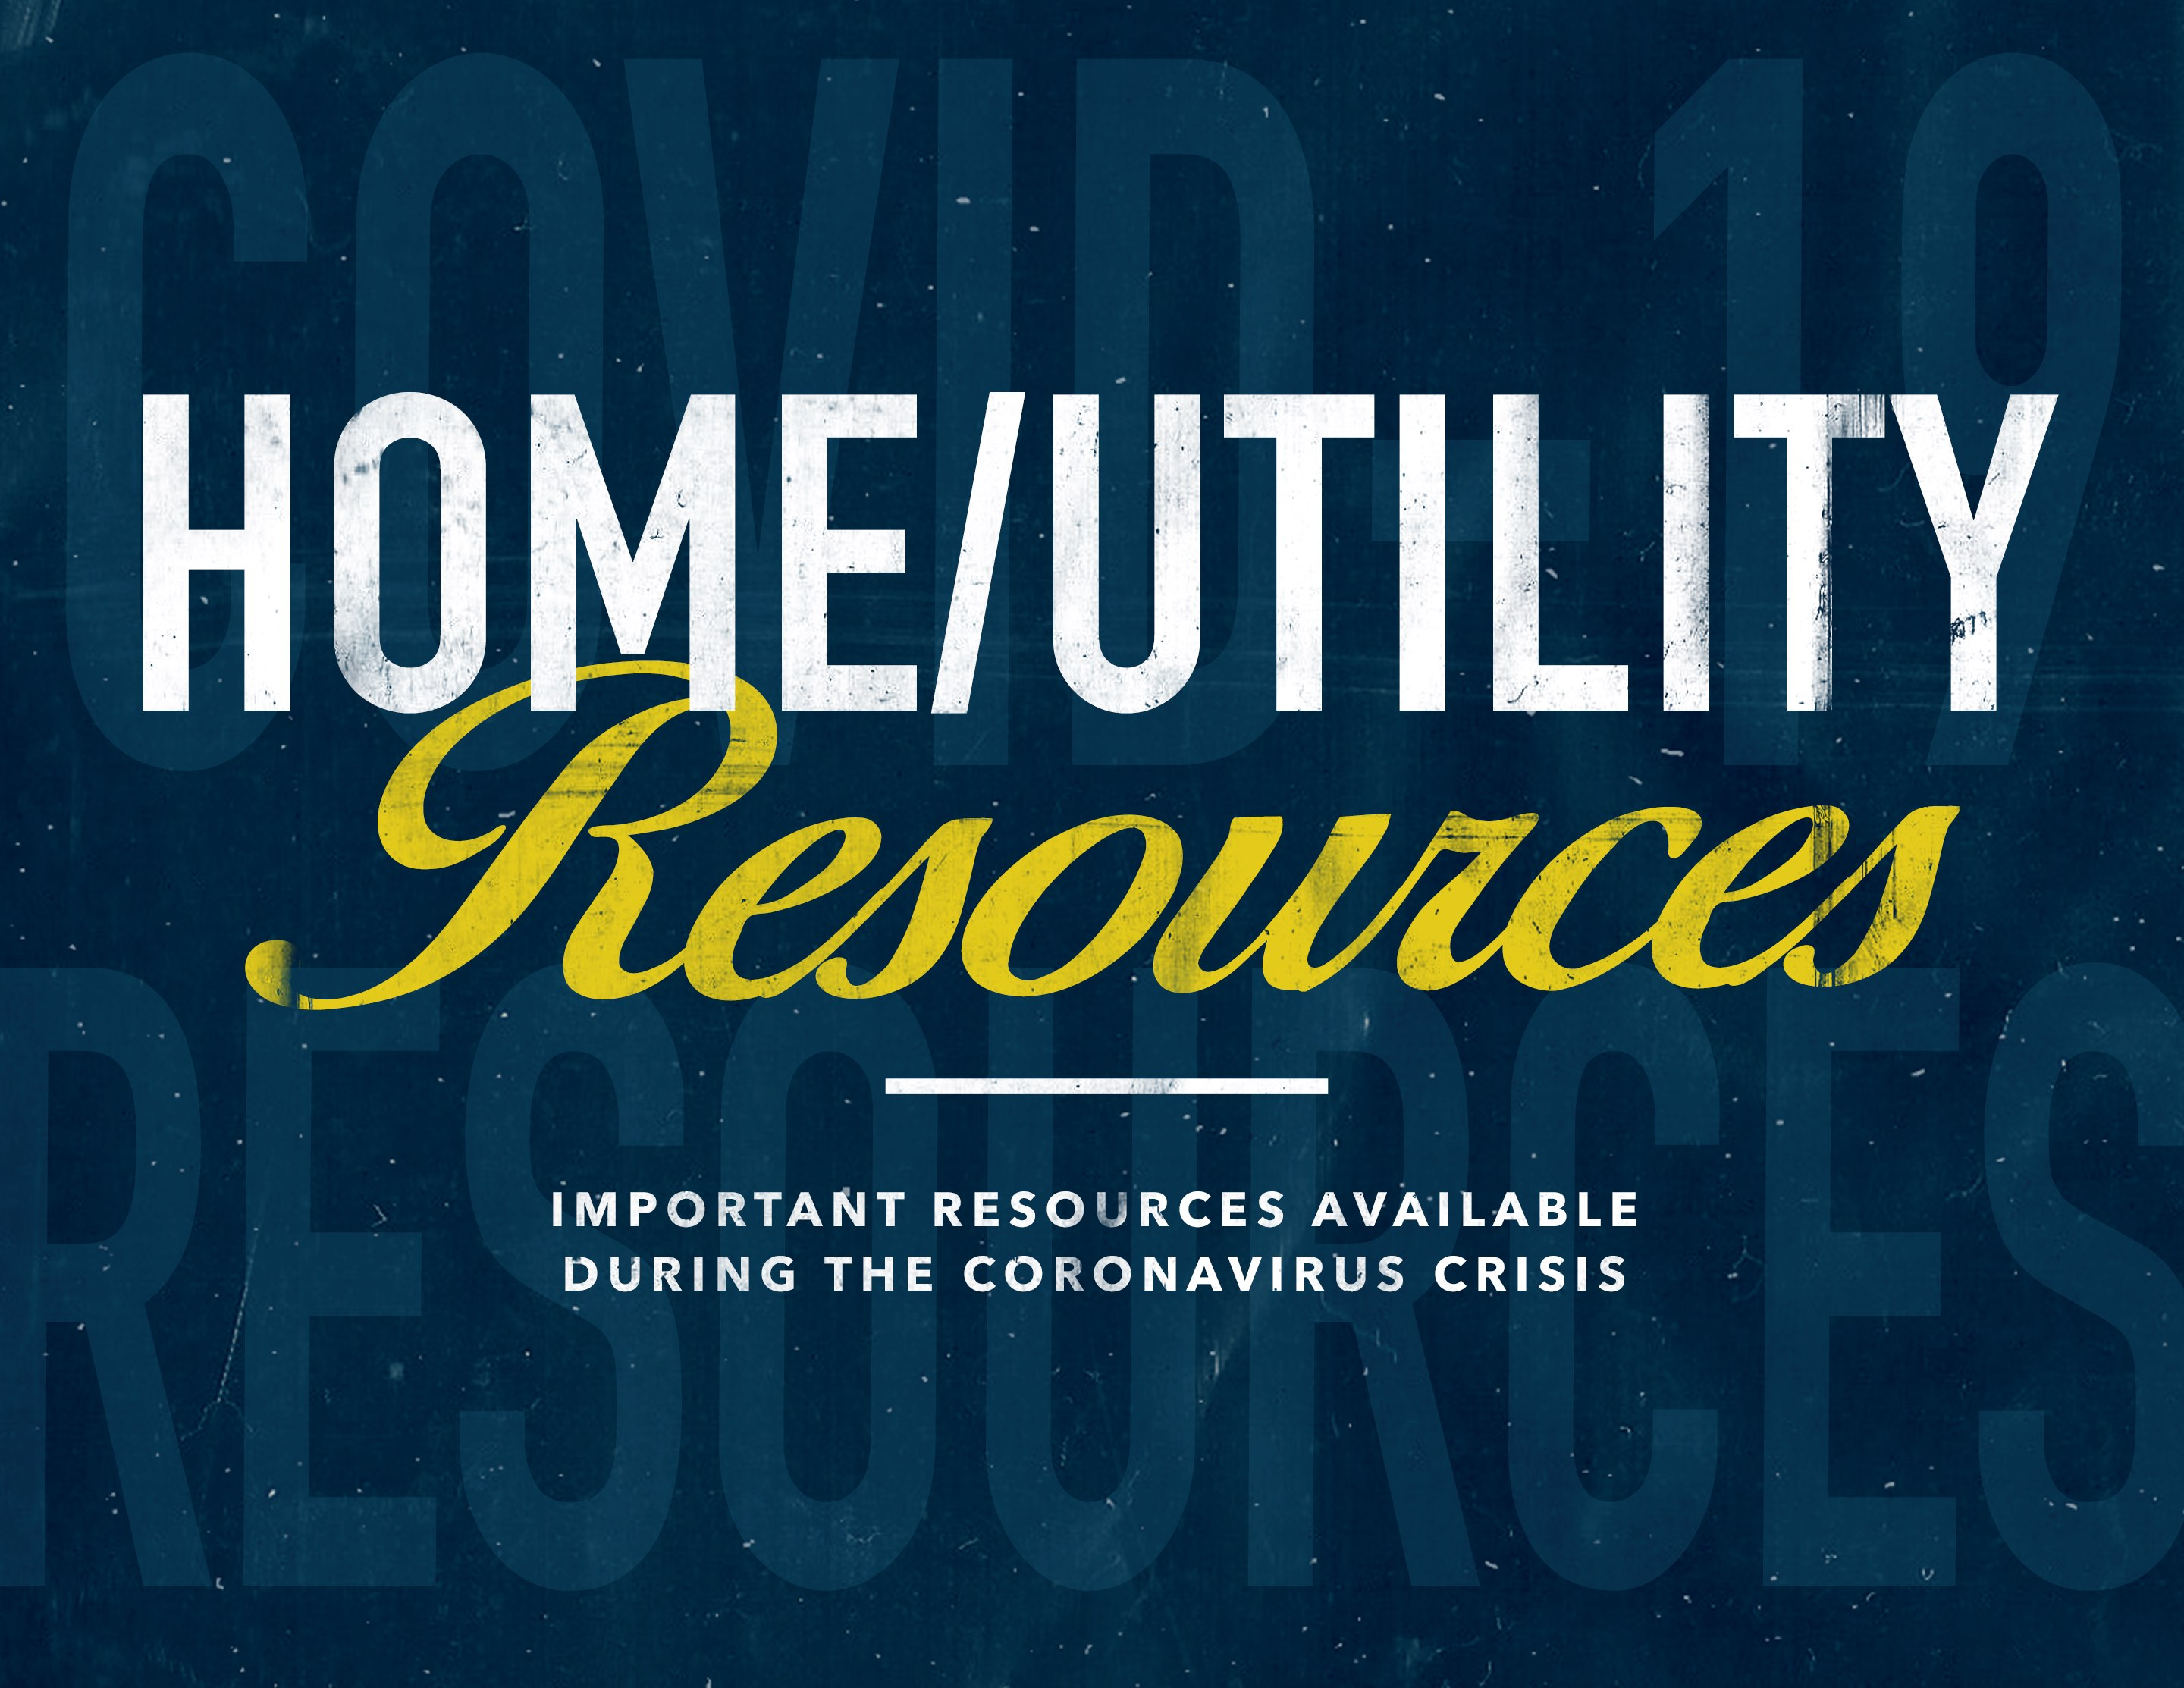 New Salem COVID Home Utility Resources